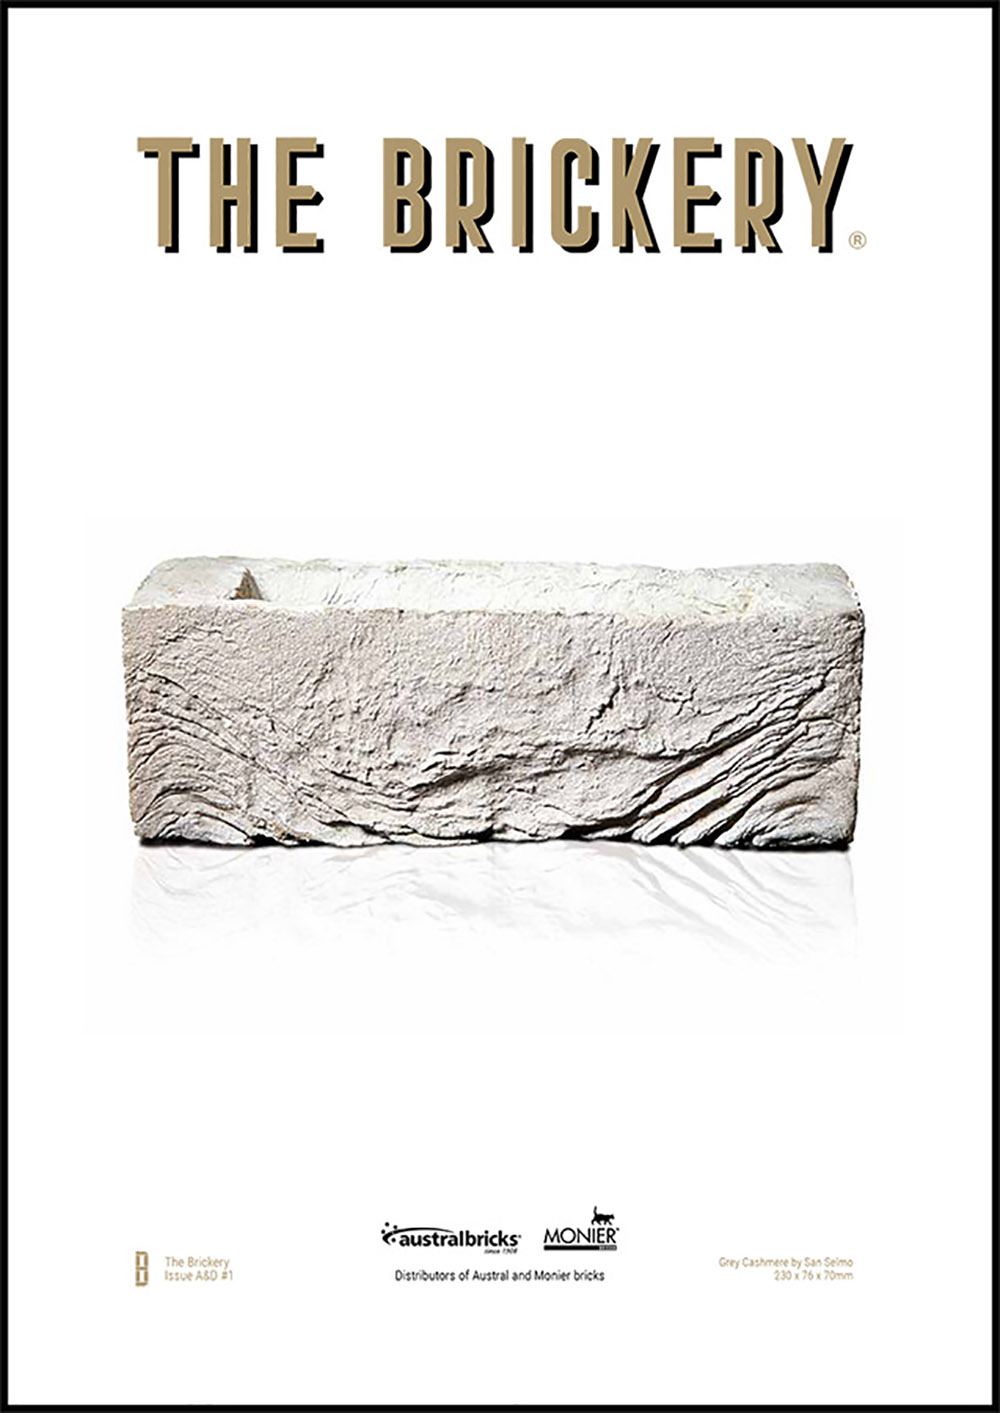 The-Brickery-Brochure_01.jpg